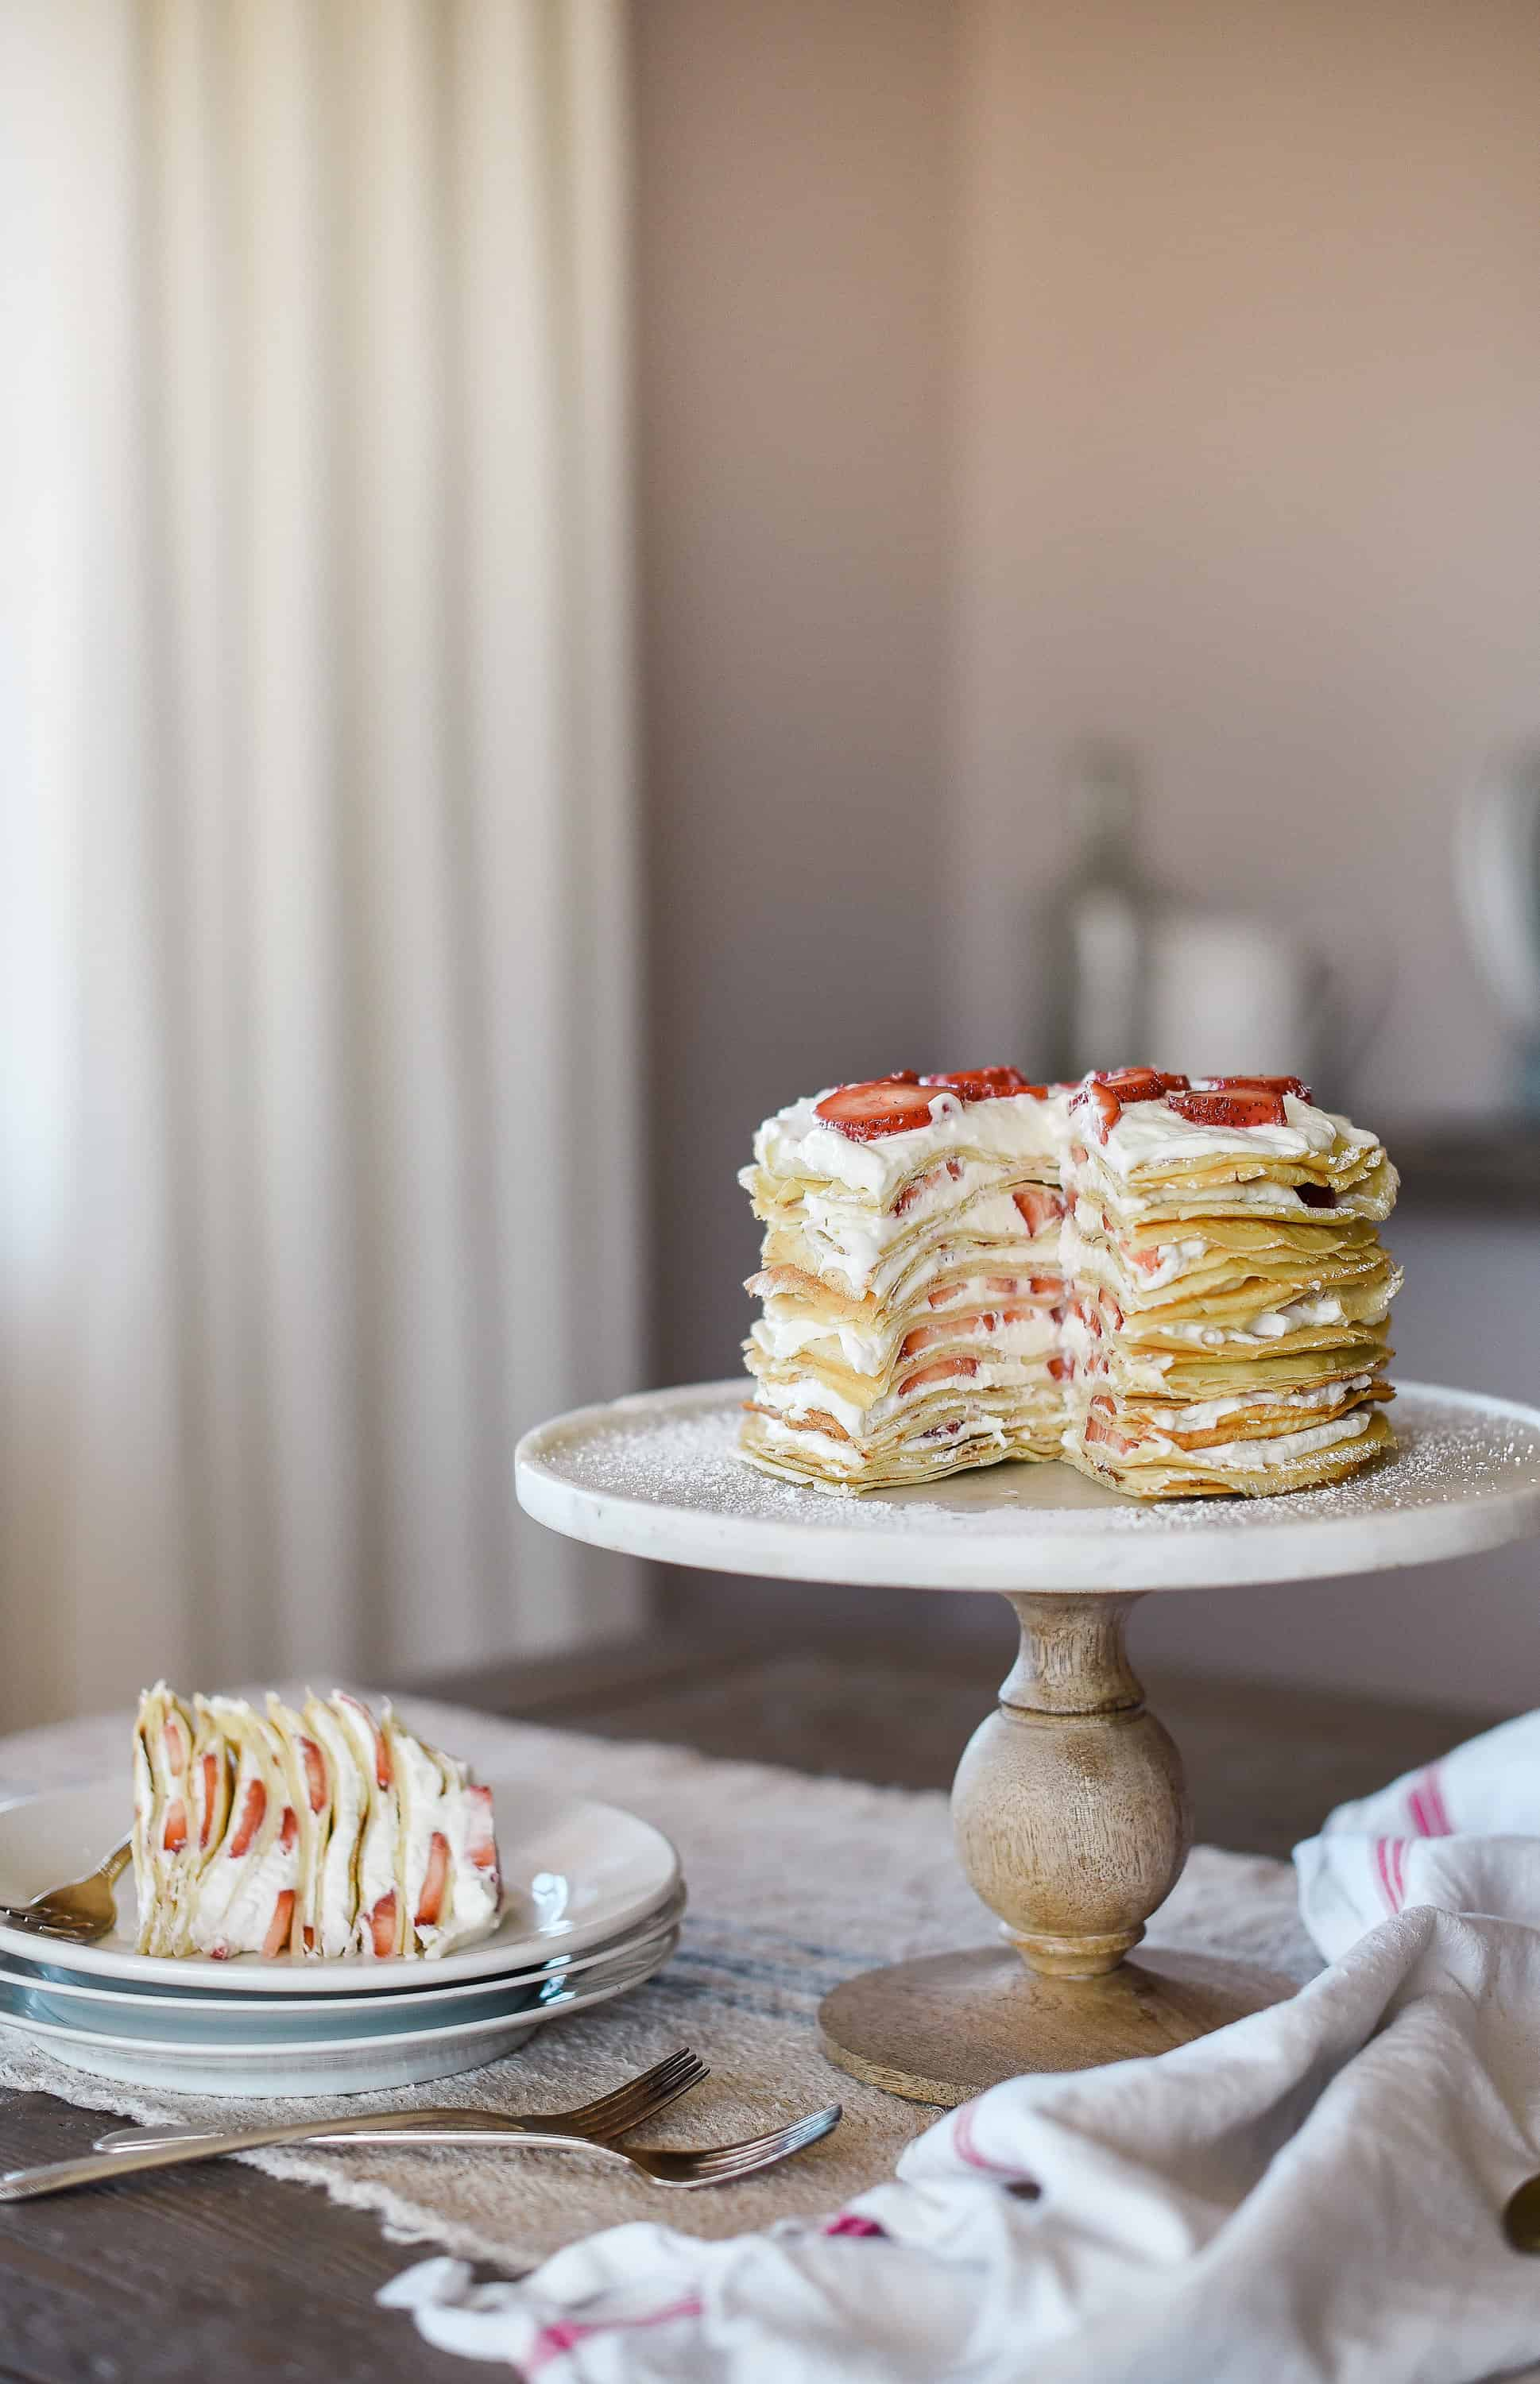 This crepe cake recipe is a show-stopper, and is perfect for special occasions! The cake is made of delicate crepes and filled with strawberries & whipped cream!